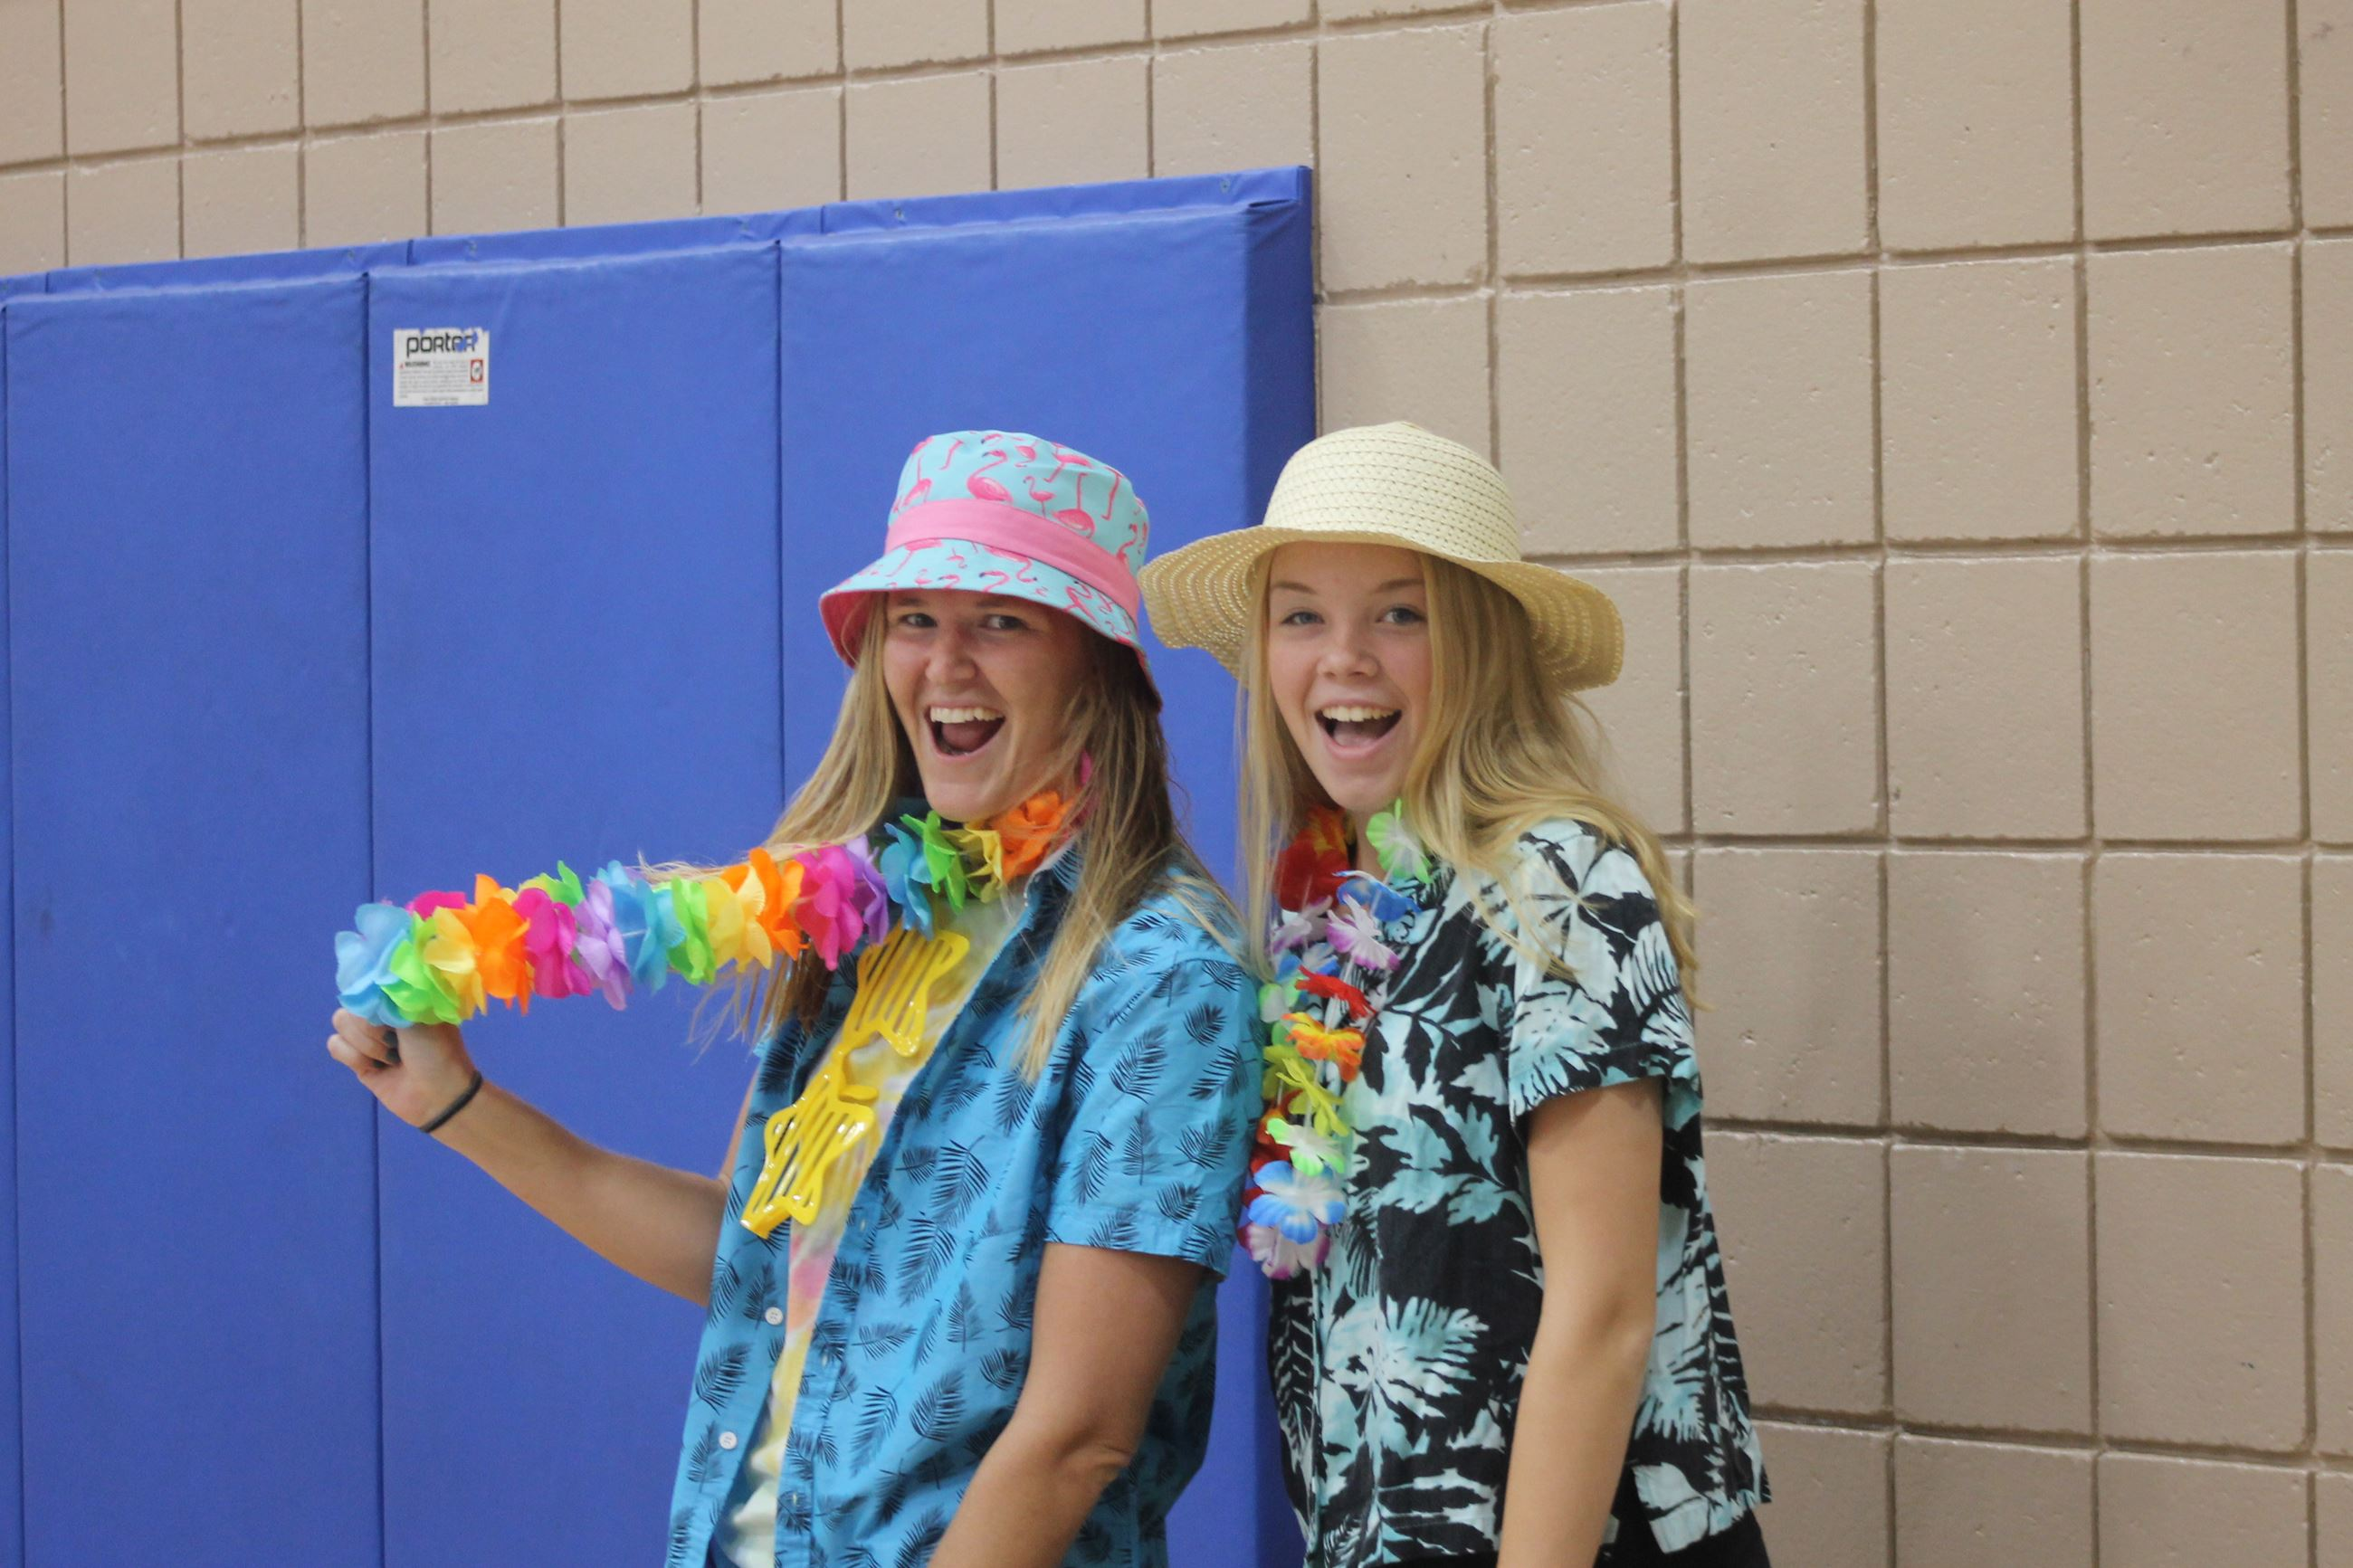 Two recreation employees wear tacky tourist gear at a themed day at summer camp